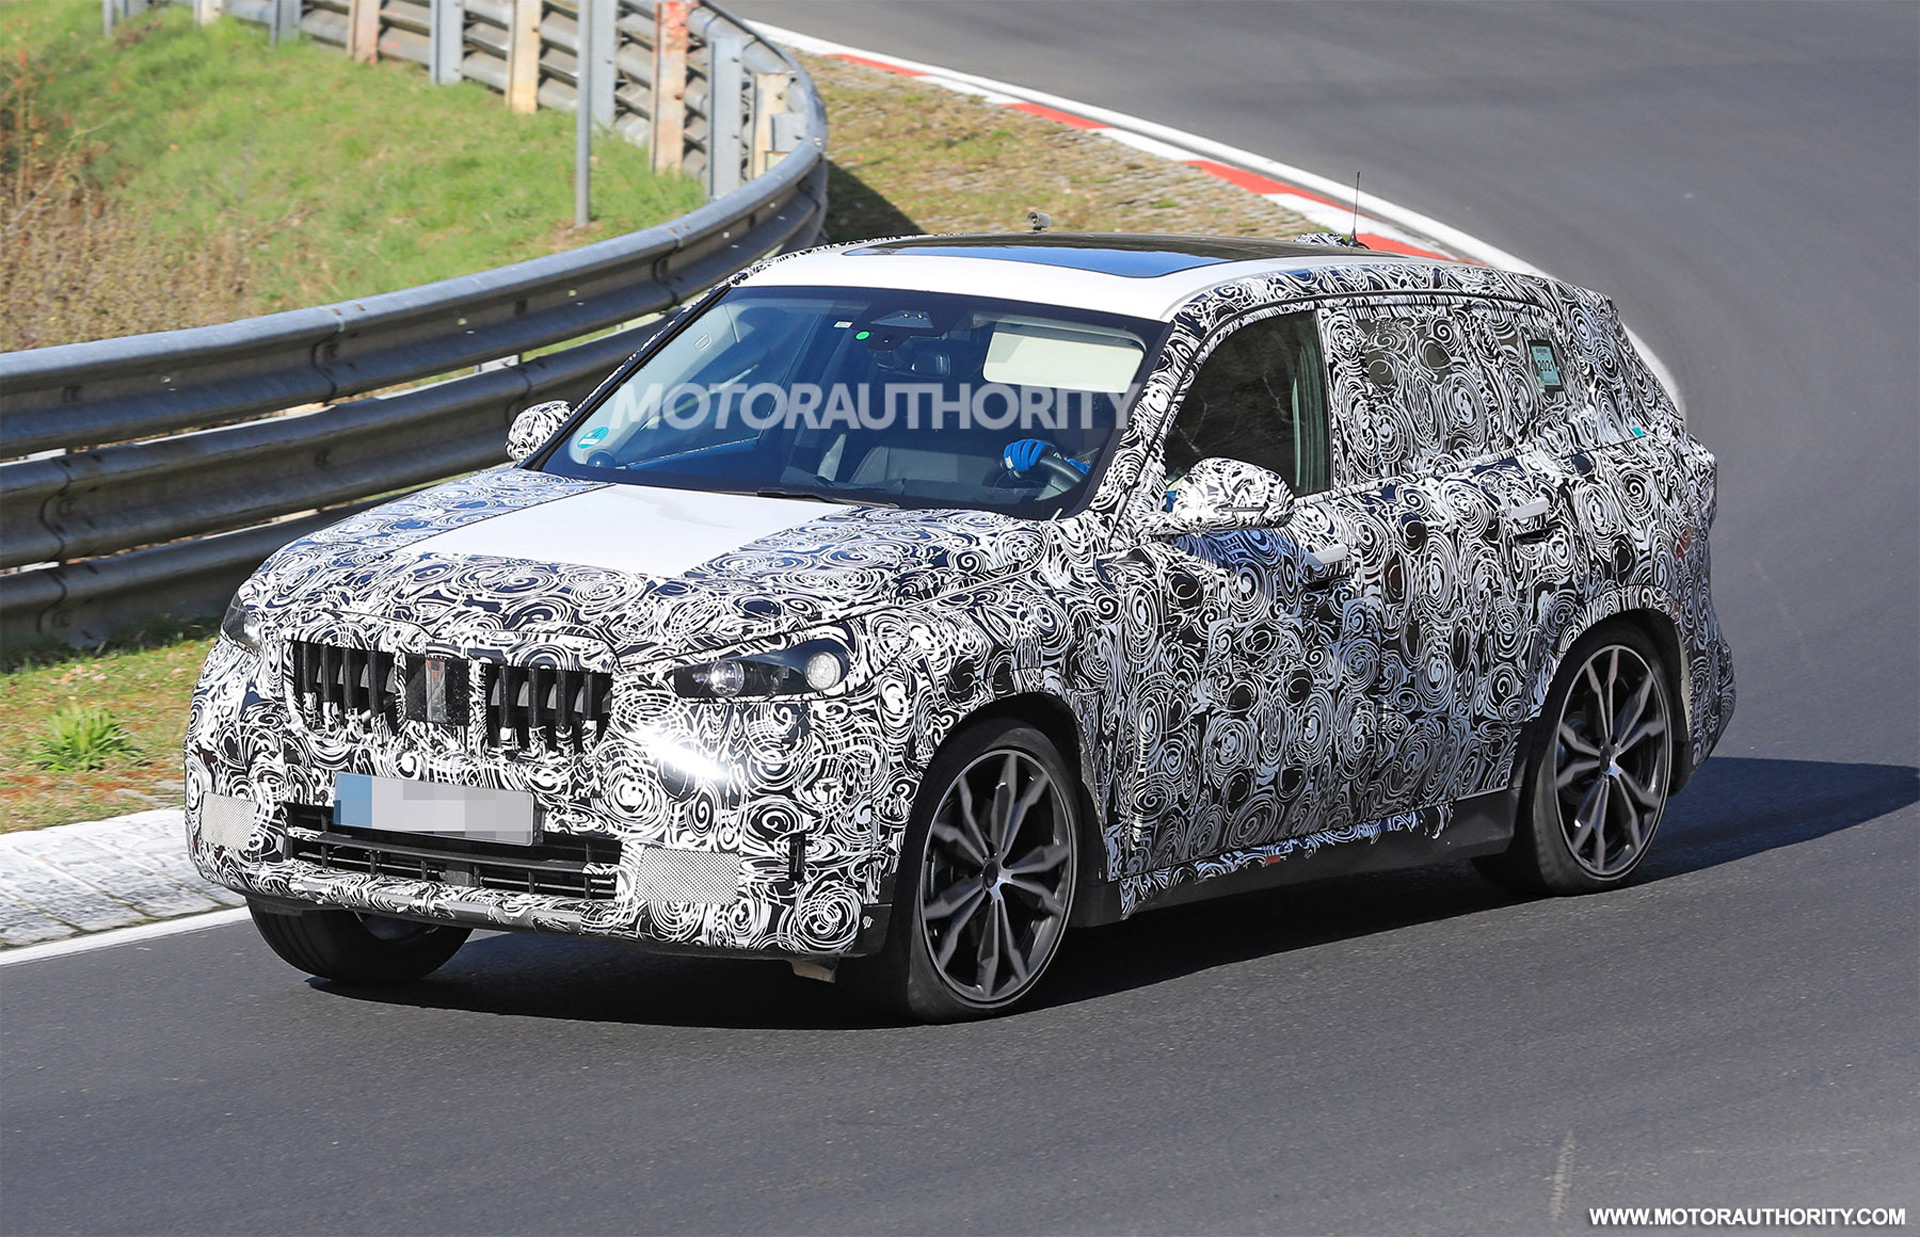 2023 BMW X1 spy shots: Handsome redesign coming for compact crossover